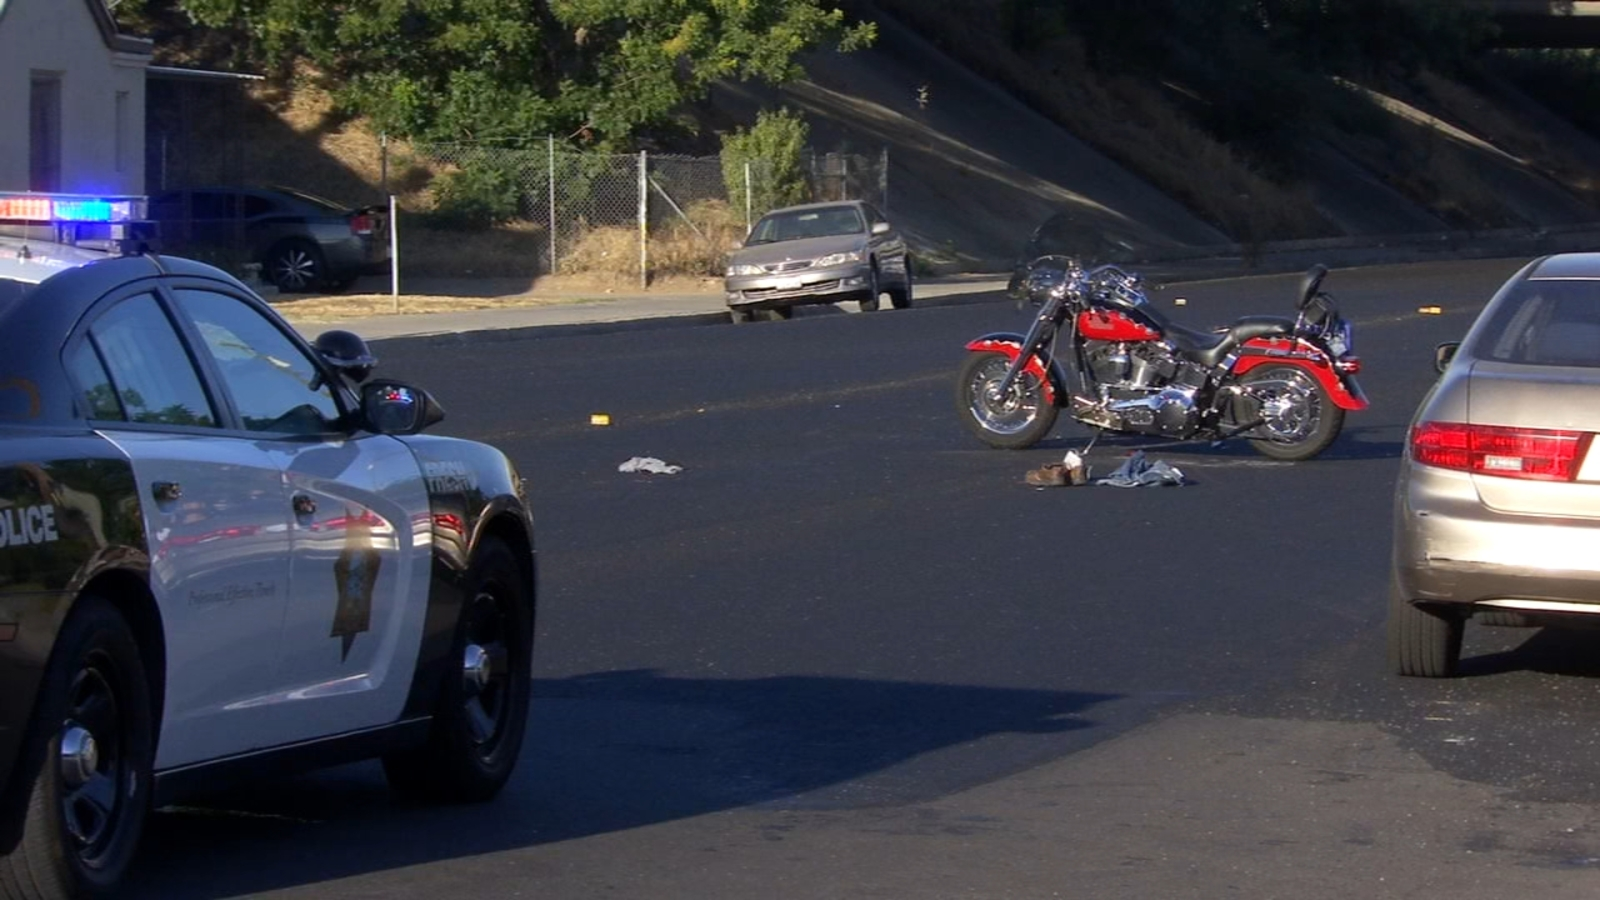 California Motorcycles News Monitoring Service & Press Release